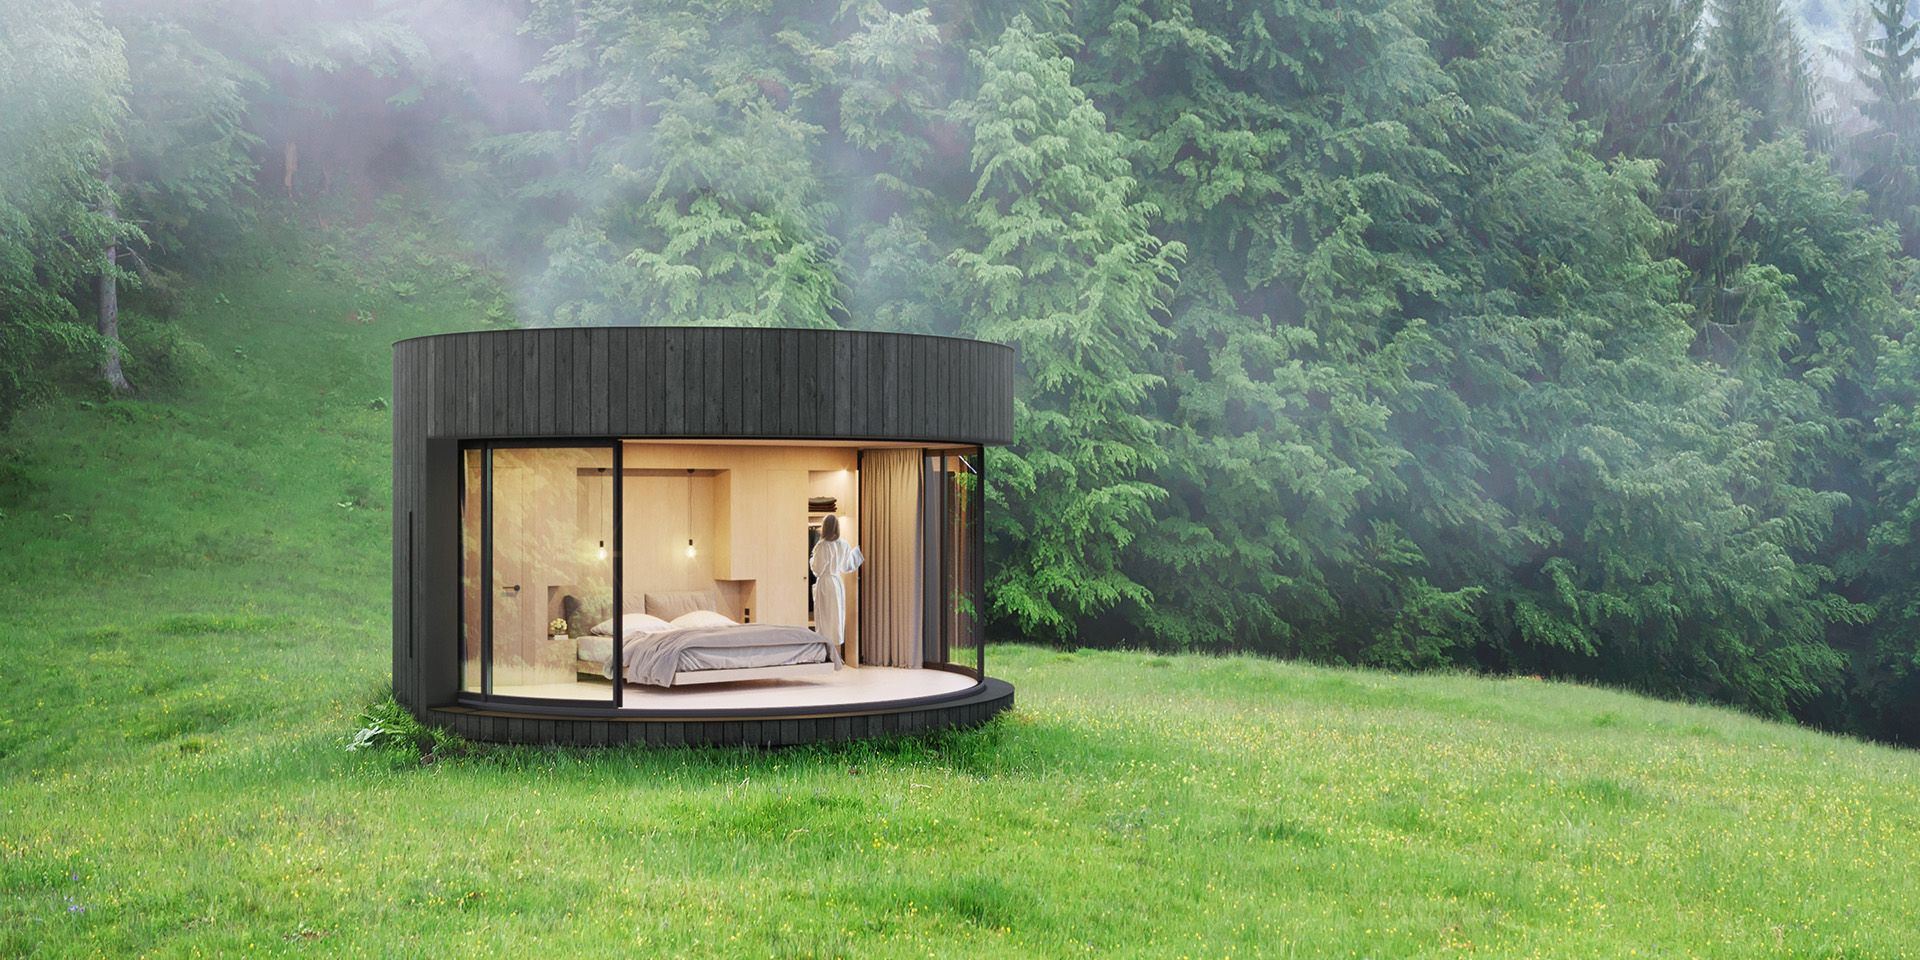 Install This Prefab Glass-and-Wood Cabin Somewhere With a Killer View